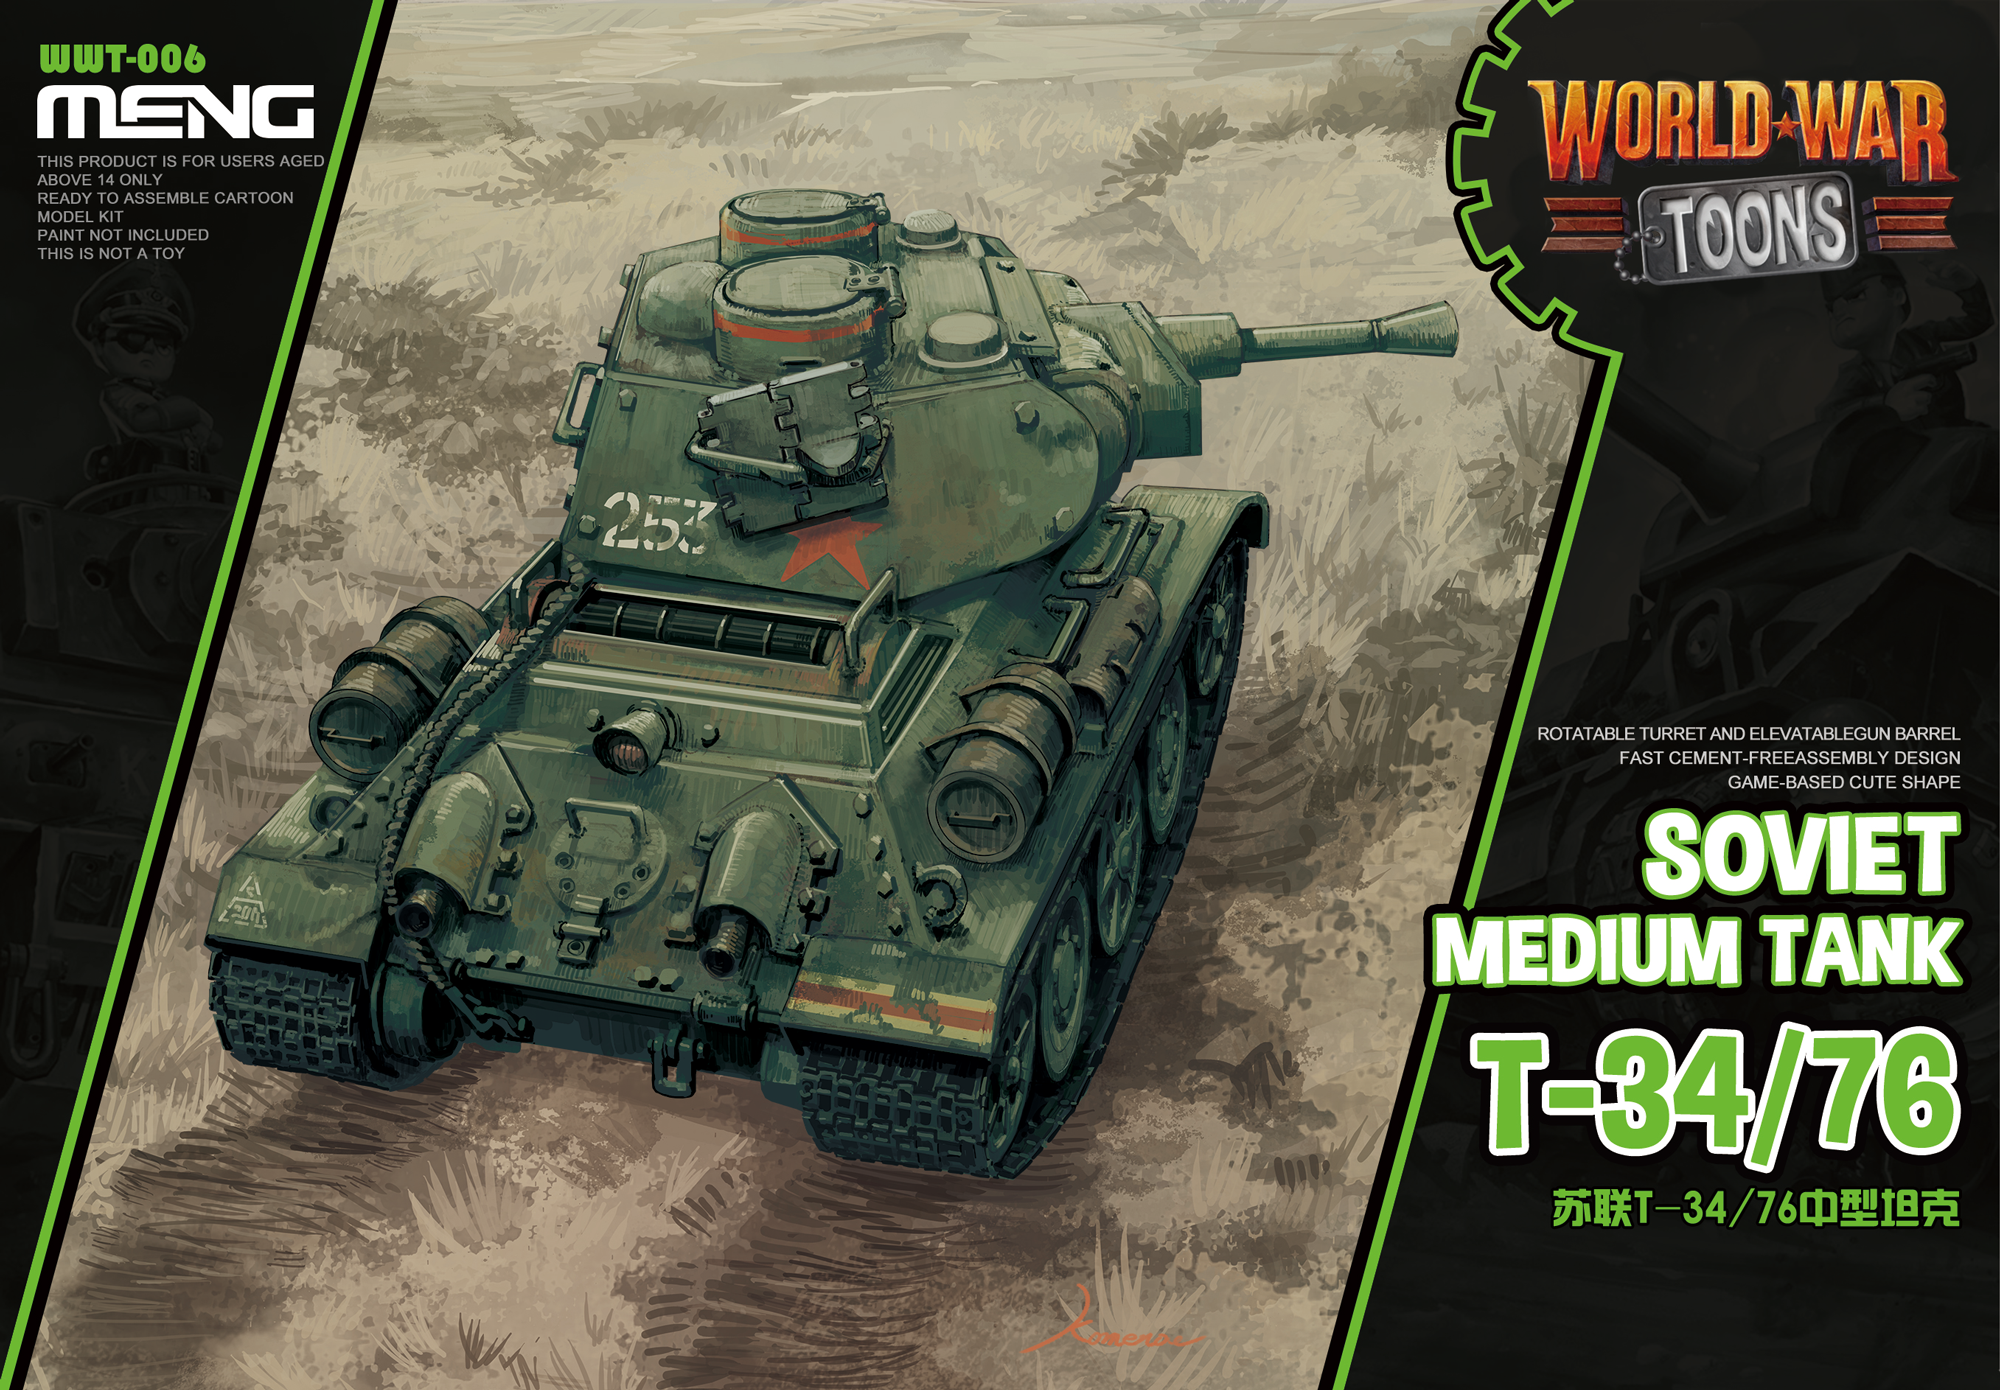 Meng Soviet Medium Tank T-34/76 (CARTOON MODEL)